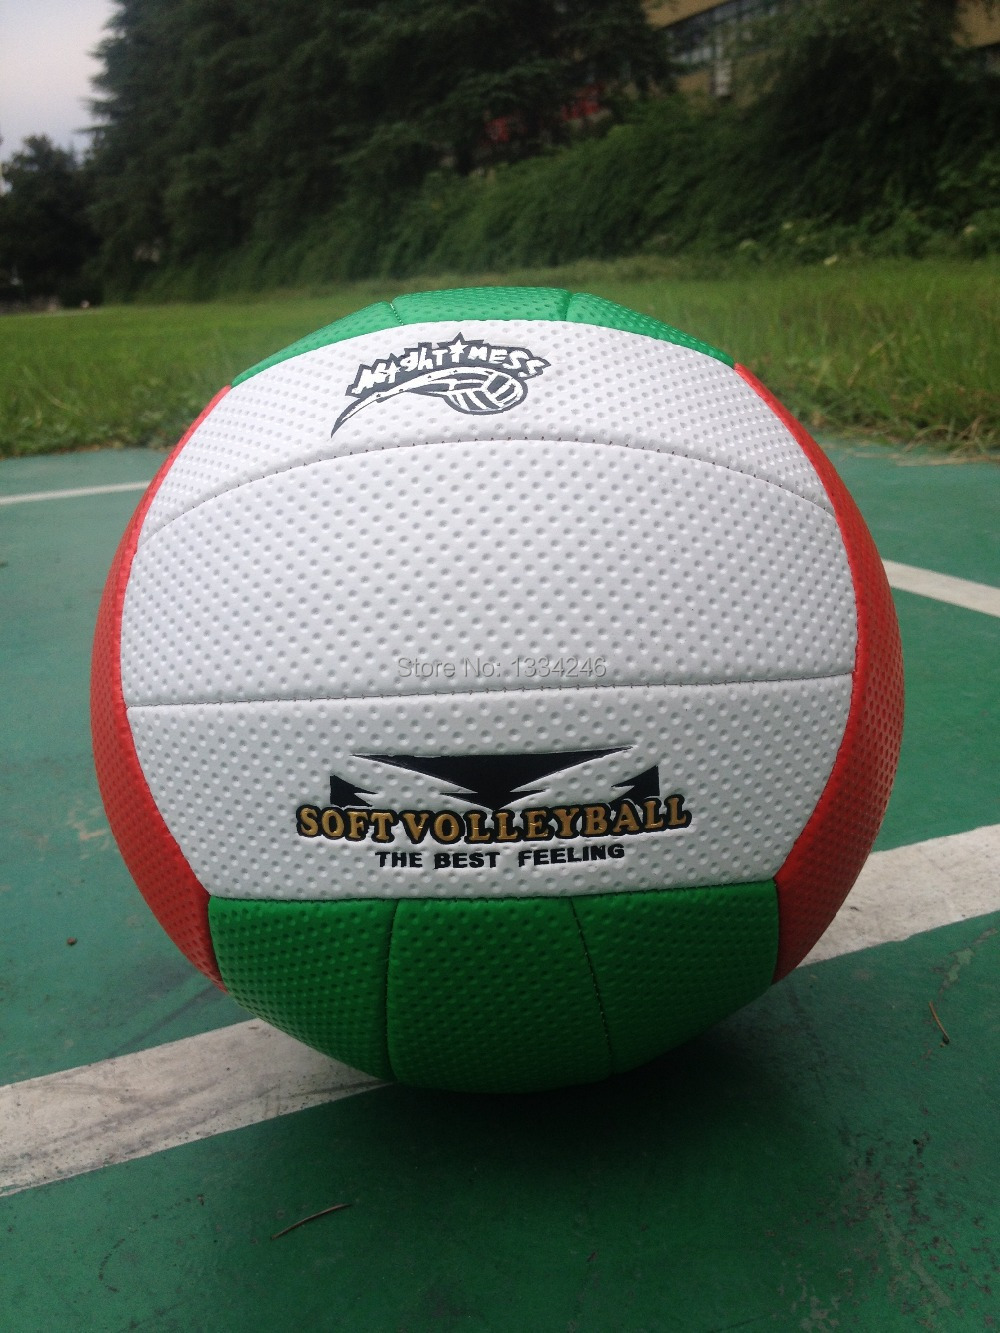 Free Shipping Beach Volleyball Official Volley ball size5 voleibol Soft volleyball ball High Quality 18 Panels Match Volleybal(China (Mainland))